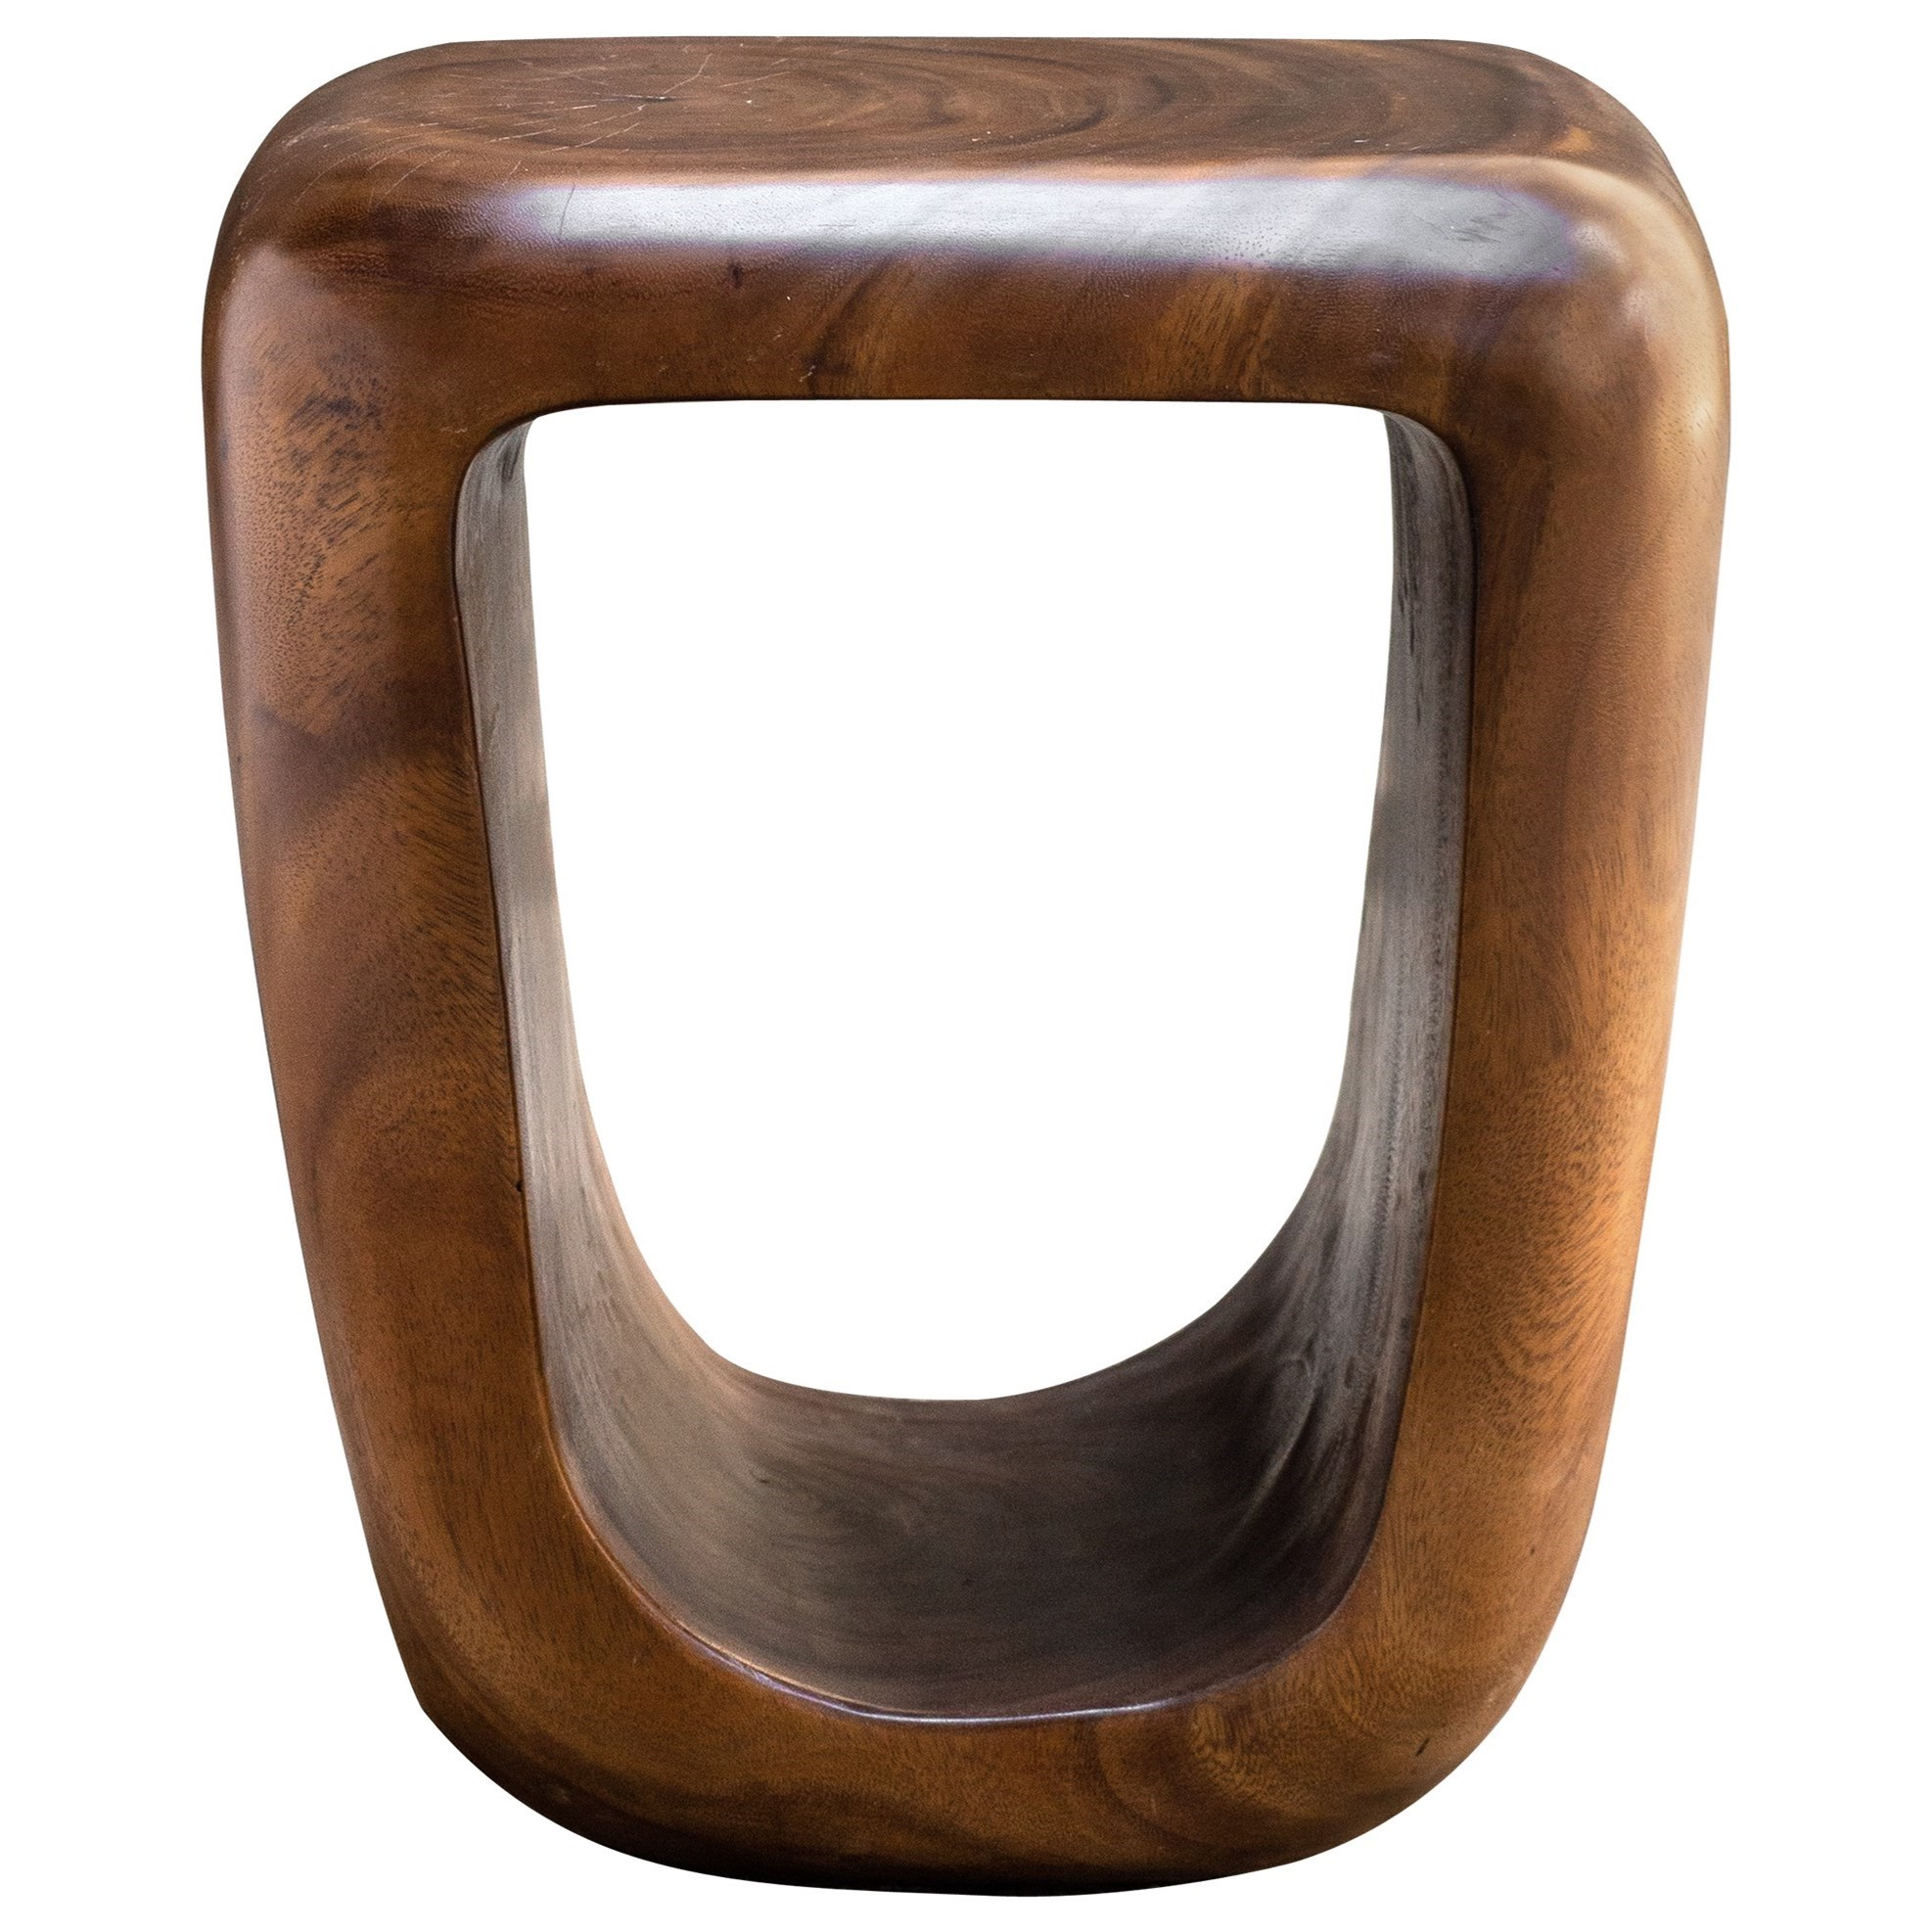 Accent Furniture - Stools Loophole Wooden Accent Stool by Uttermost at Suburban Furniture